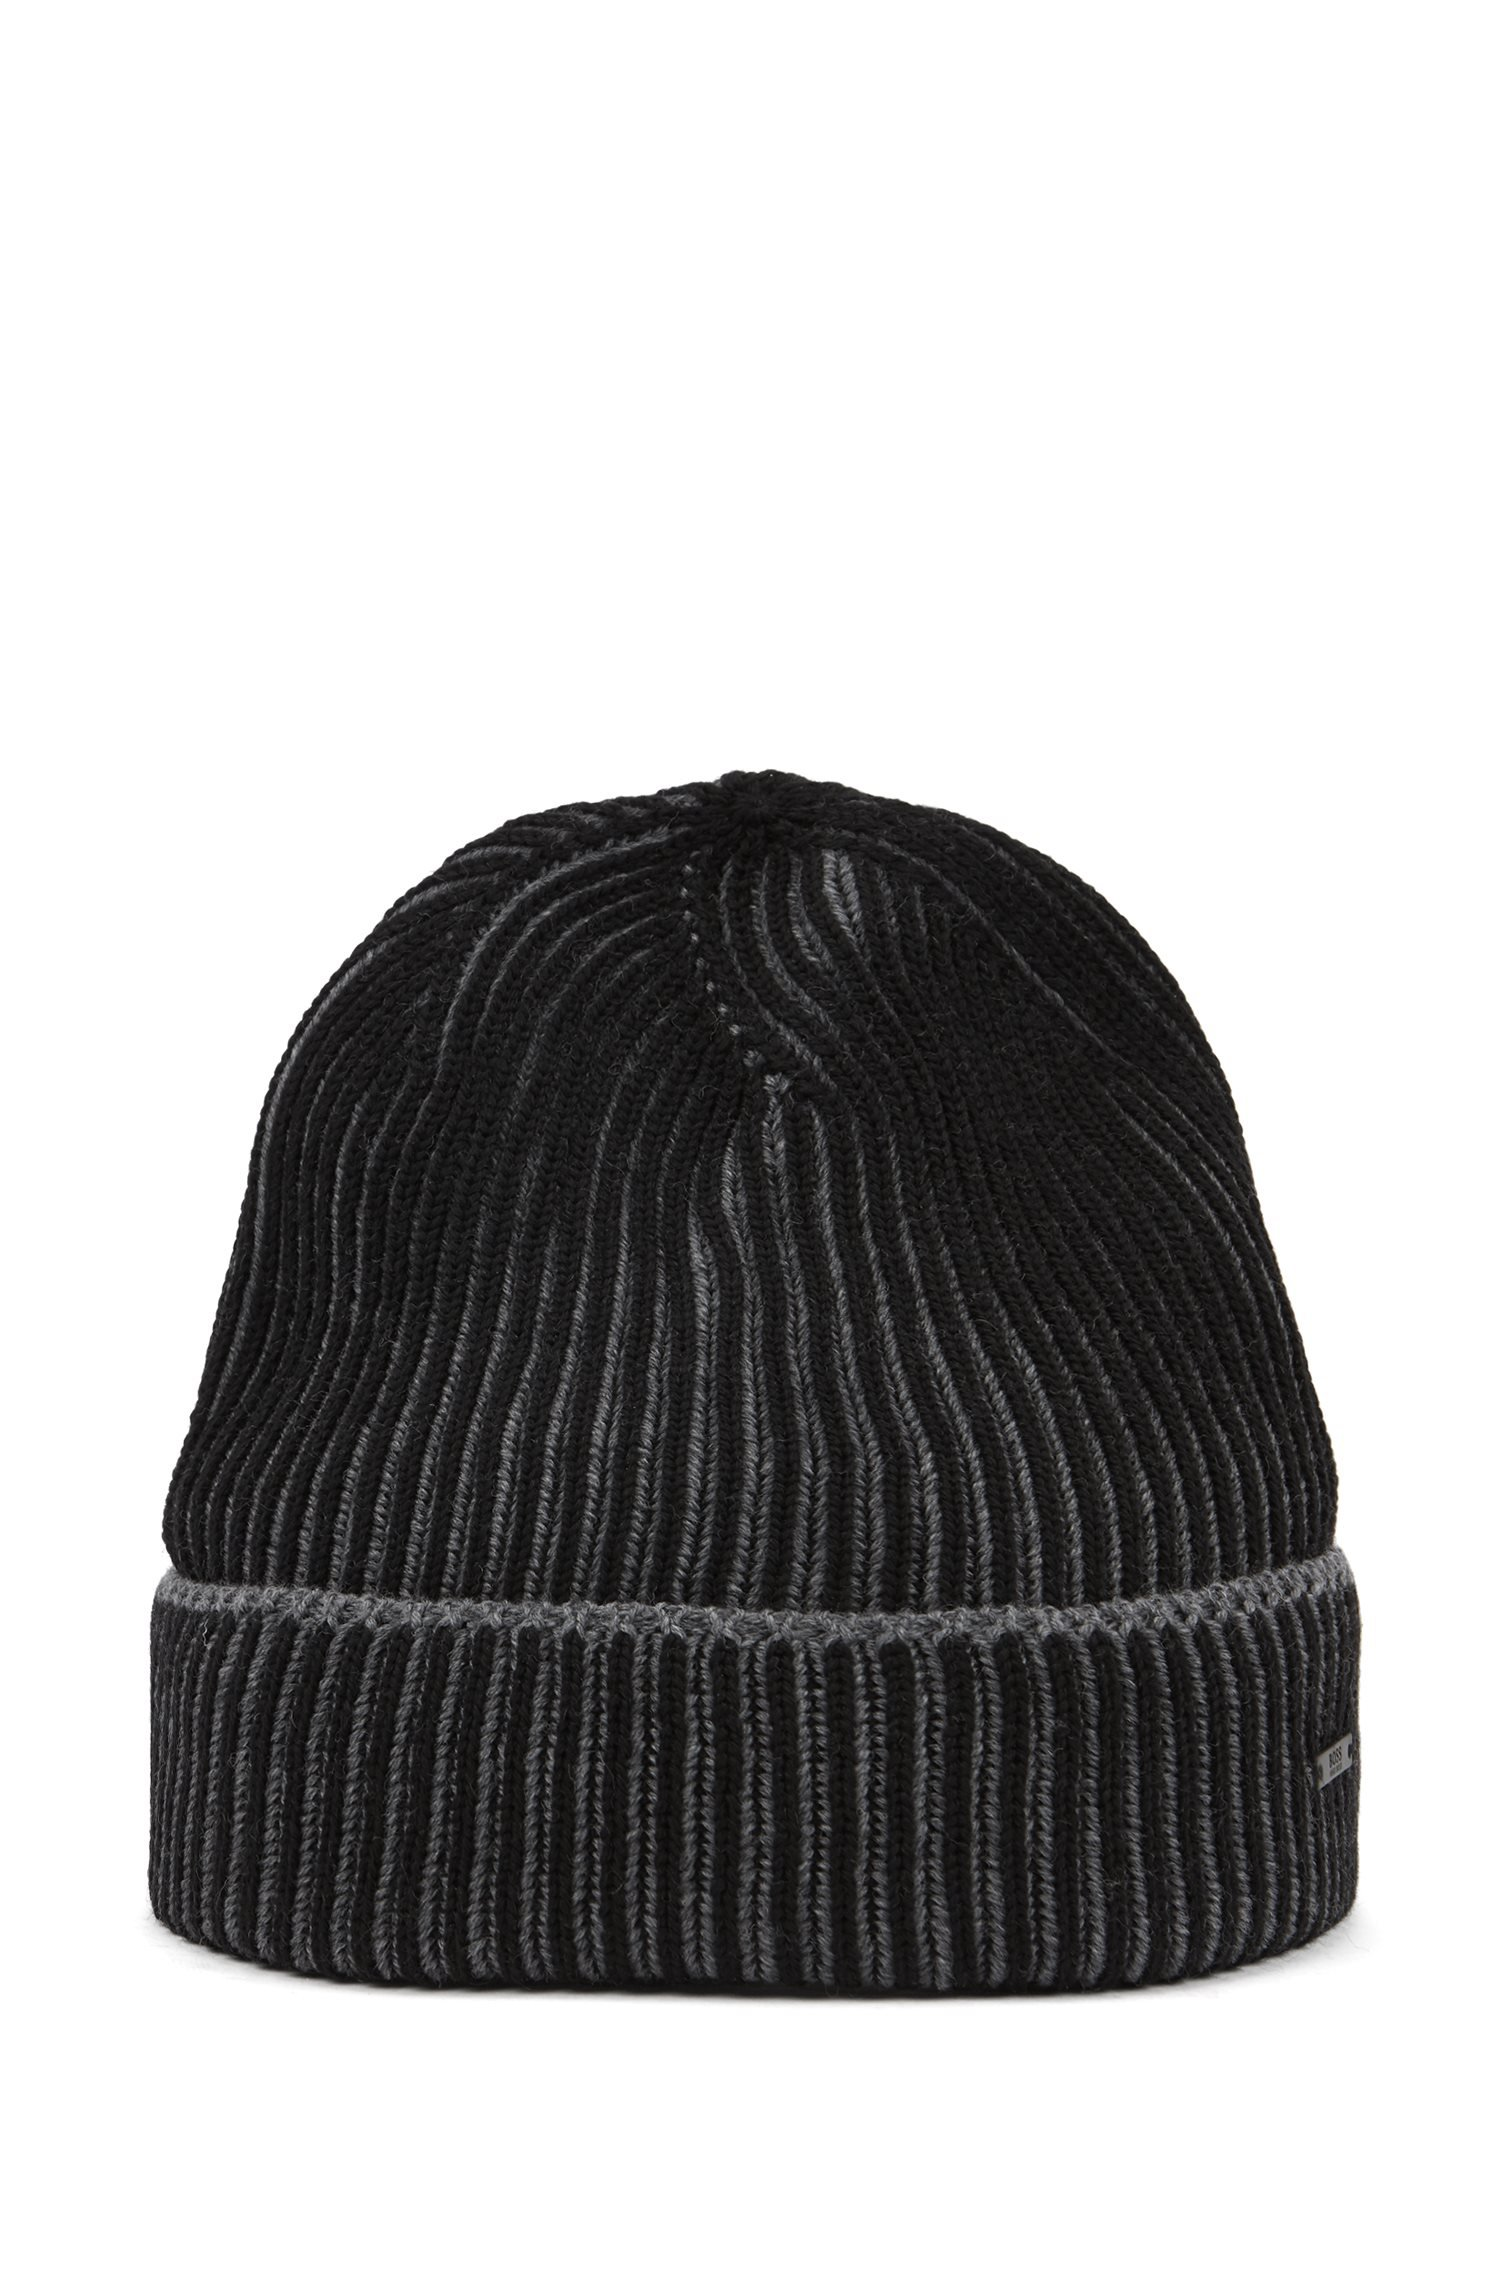 HUGO BOSS Cappello in lana vergine bicolore BLACK Ebalerio - 50392074